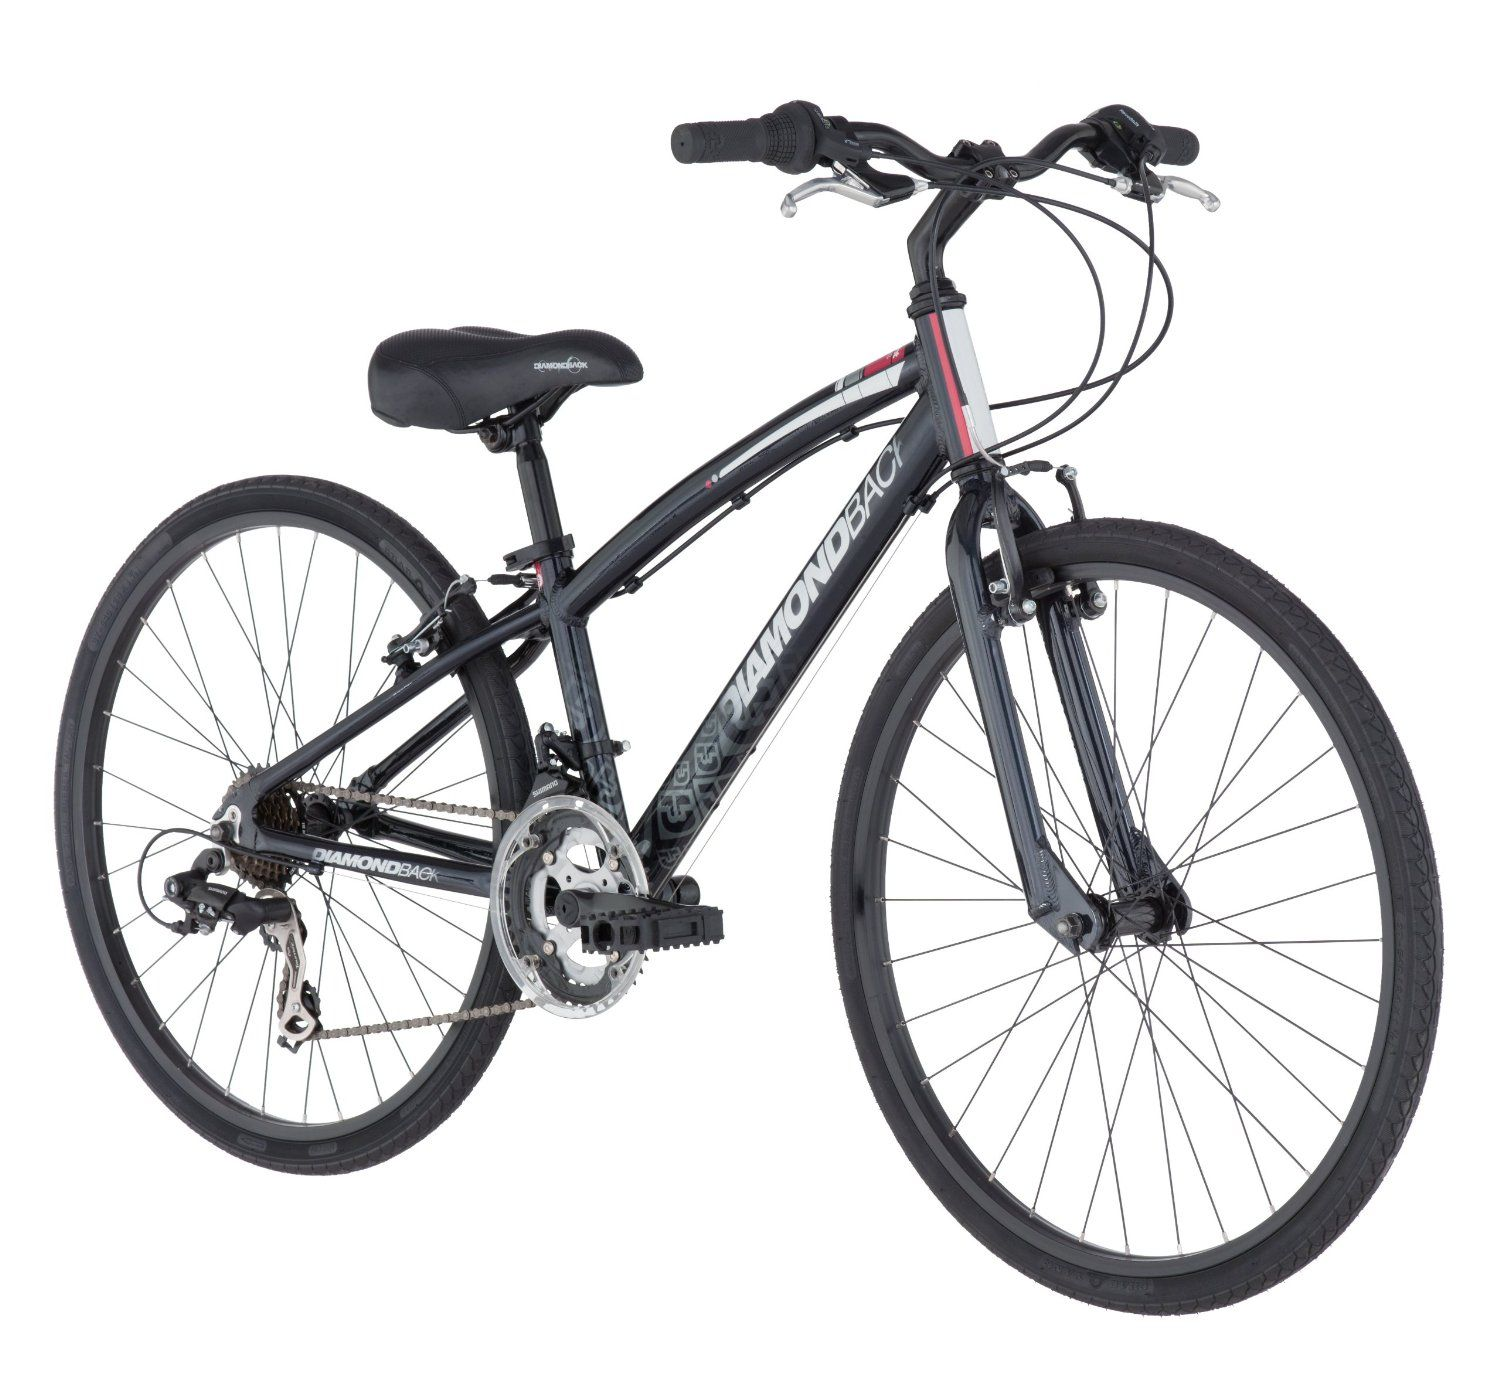 Save 39 on Diamondback Bicycles Boy's Insight Performance